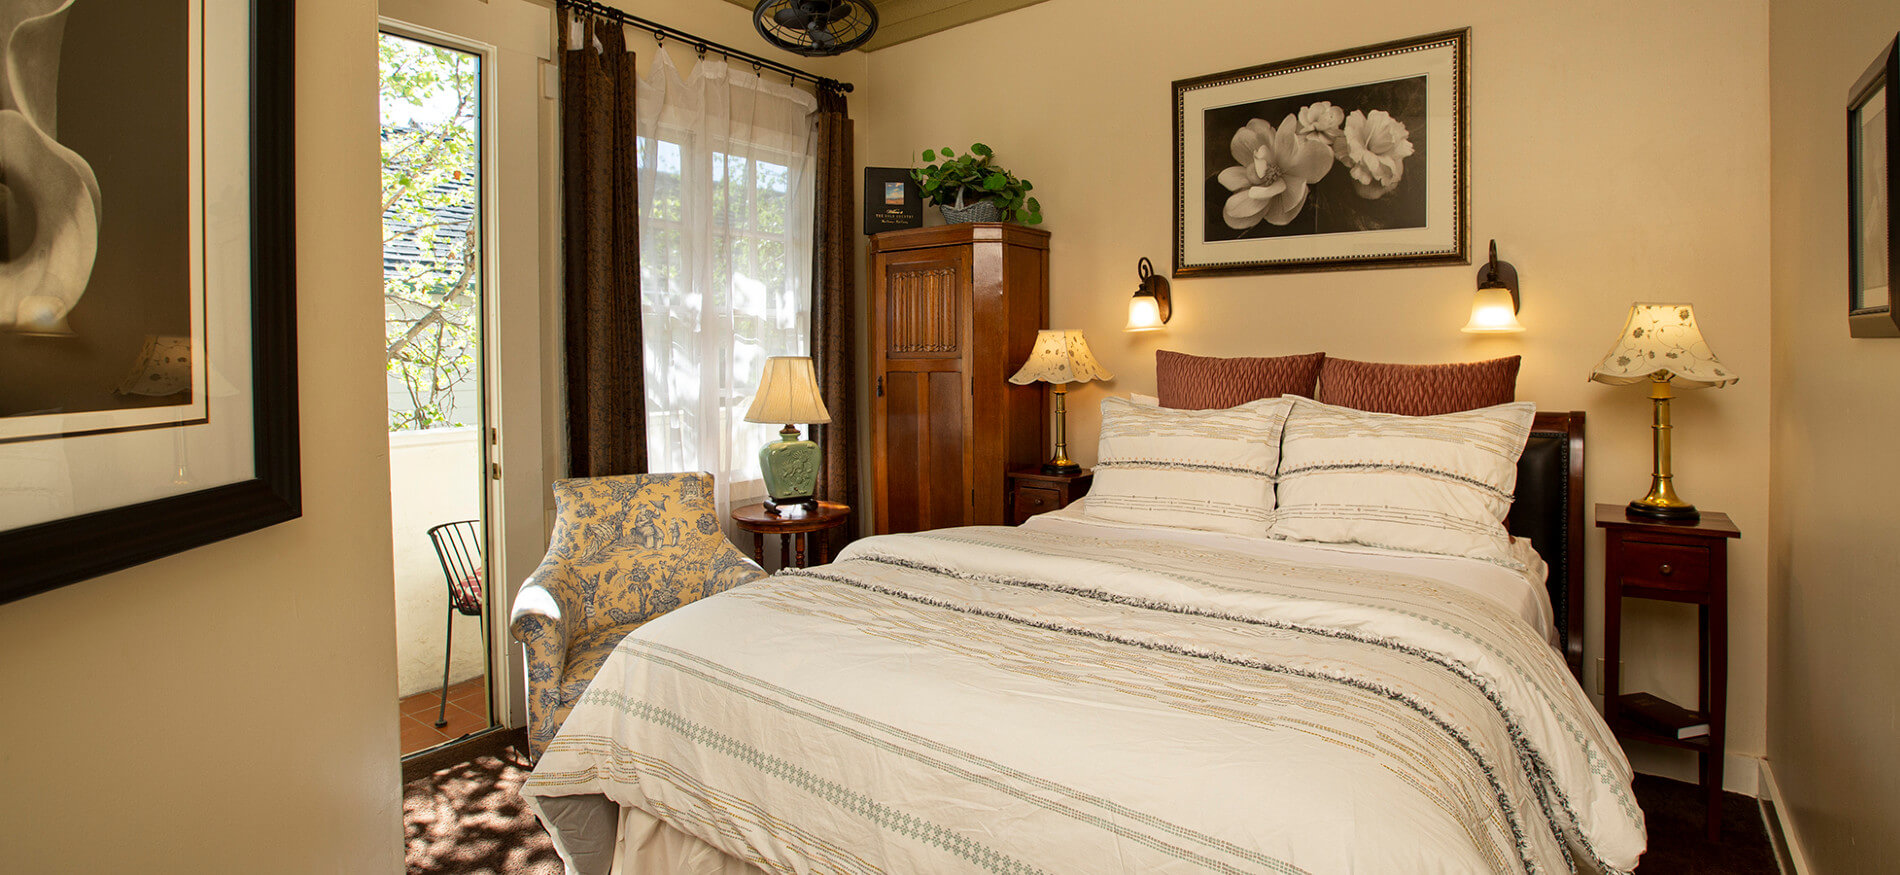 Bed with light blue and brown comforter, ivory walls, floral picture and two sconces over bed, two nightstands with lamps